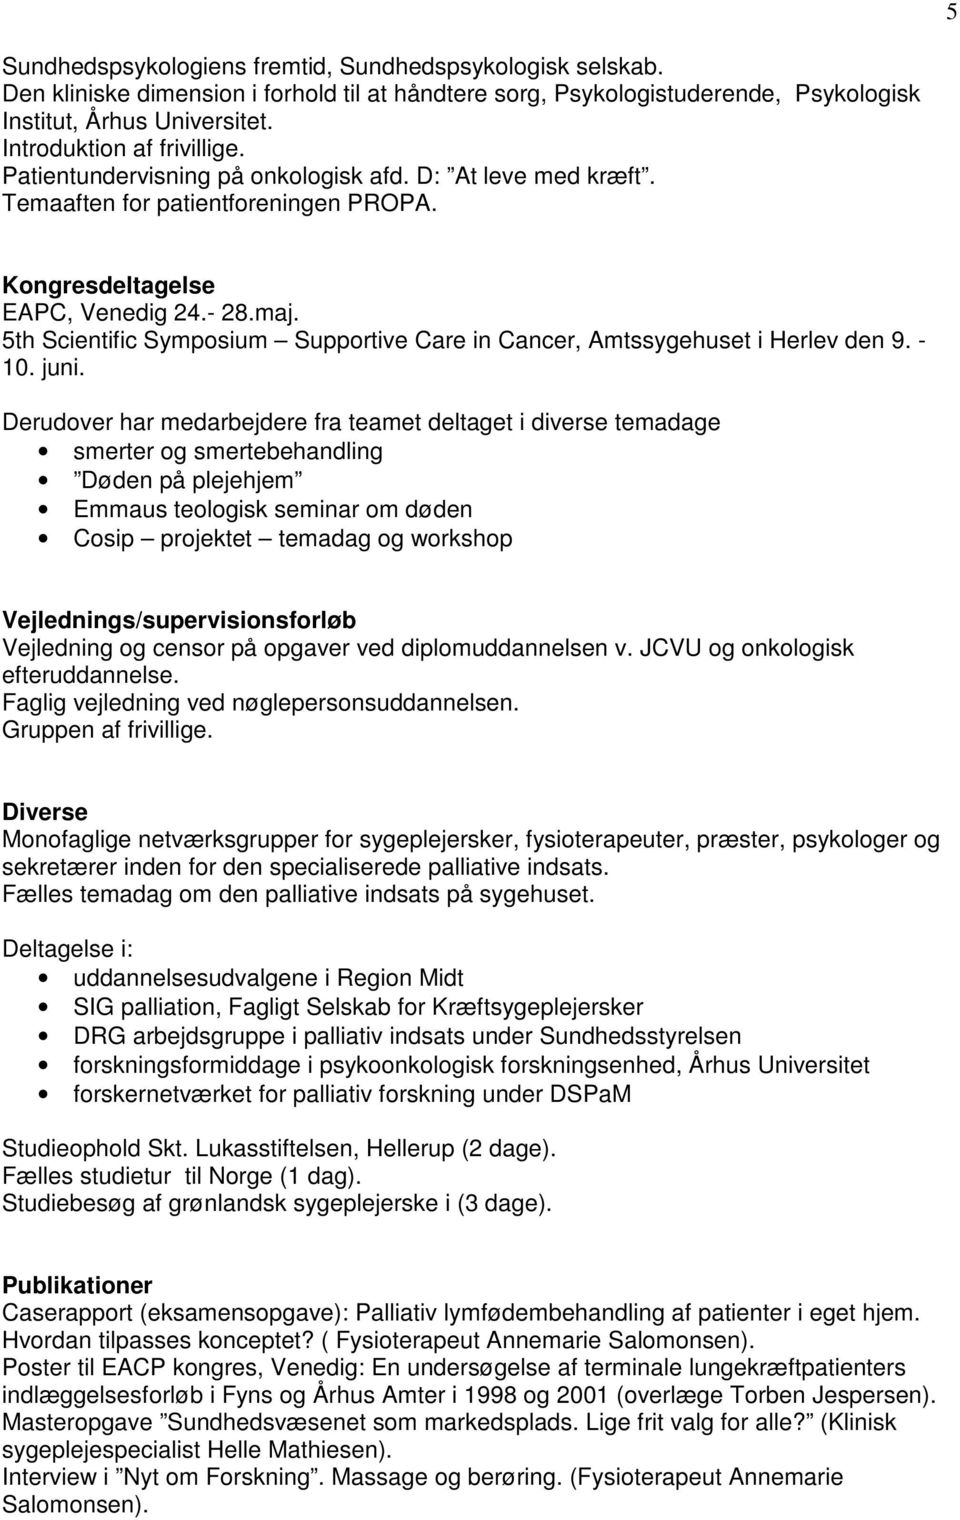 5th Scientific Symposium Supportive Care in Cancer, Amtssygehuset i Herlev den 9. - 10. juni.